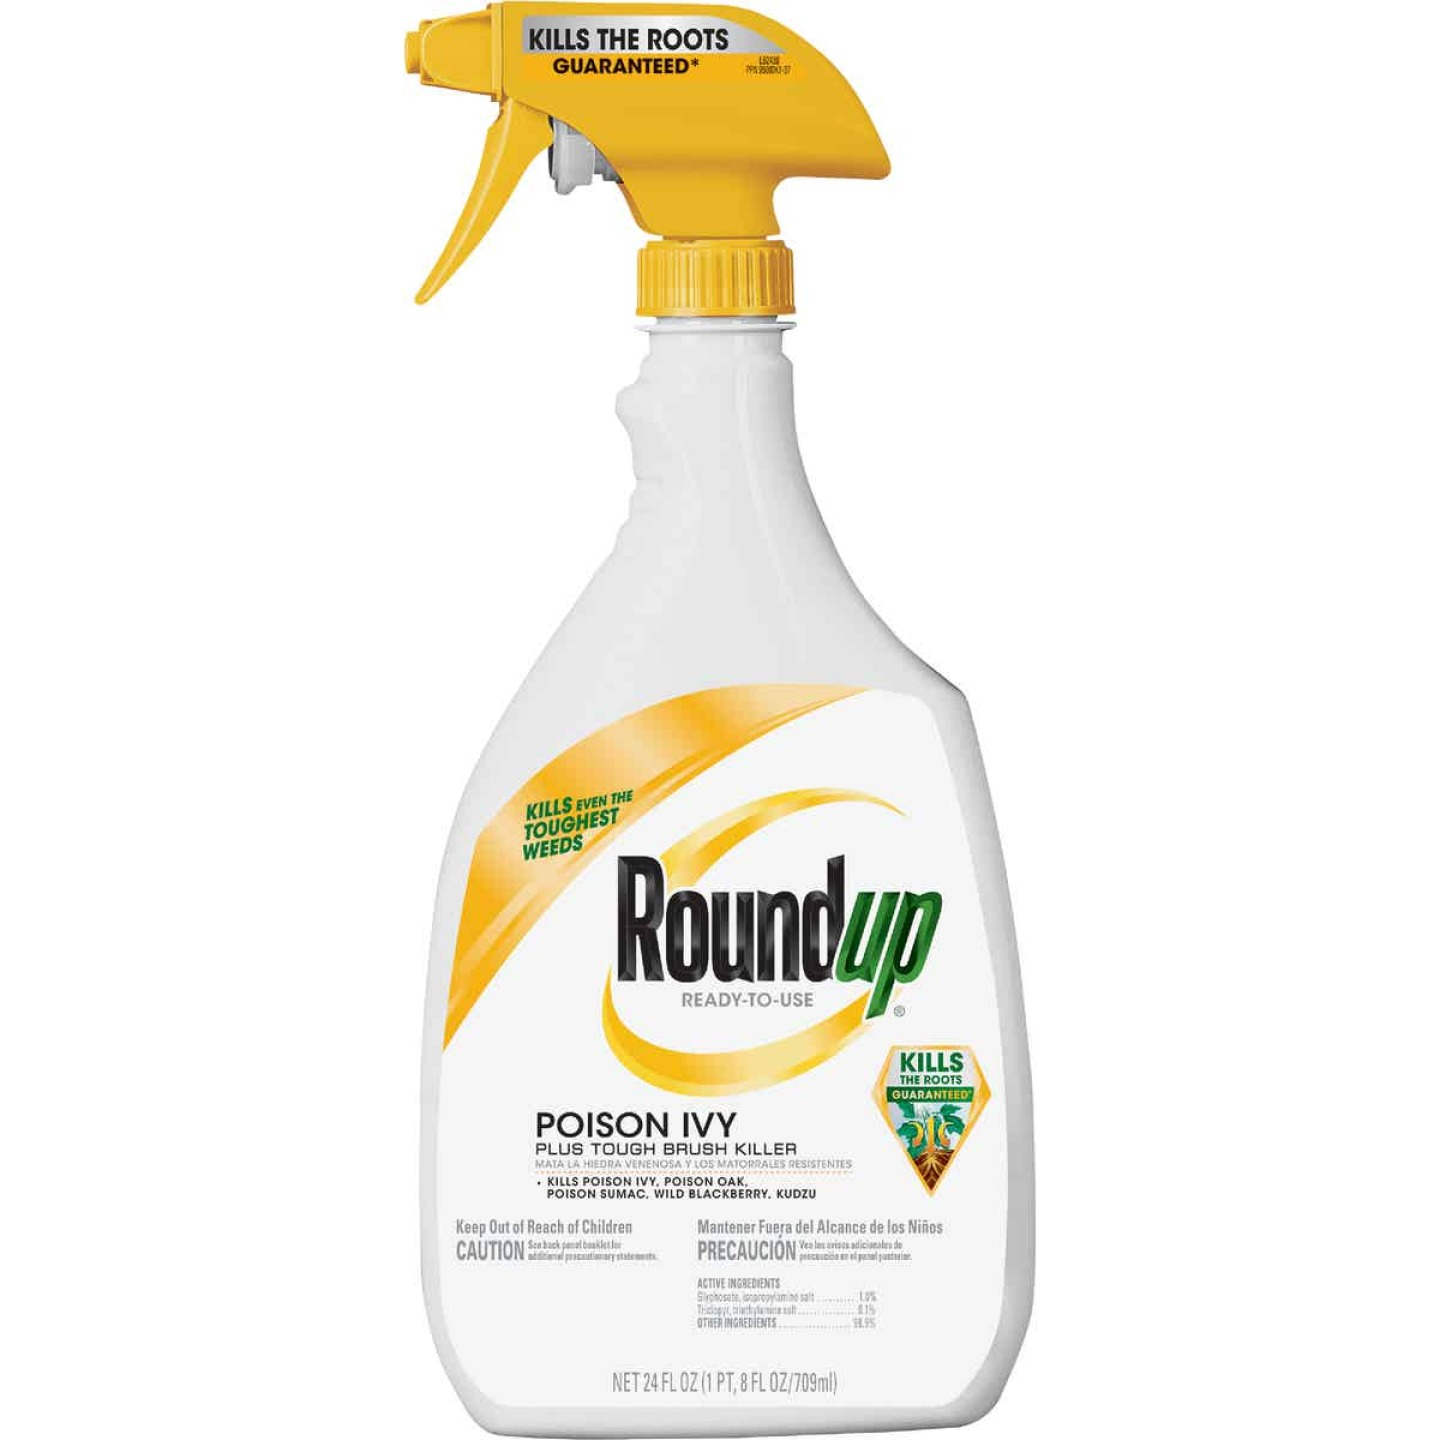 Roundup 24 Oz. Ready-To-Use Poison Oak & Ivy Killer Image 1